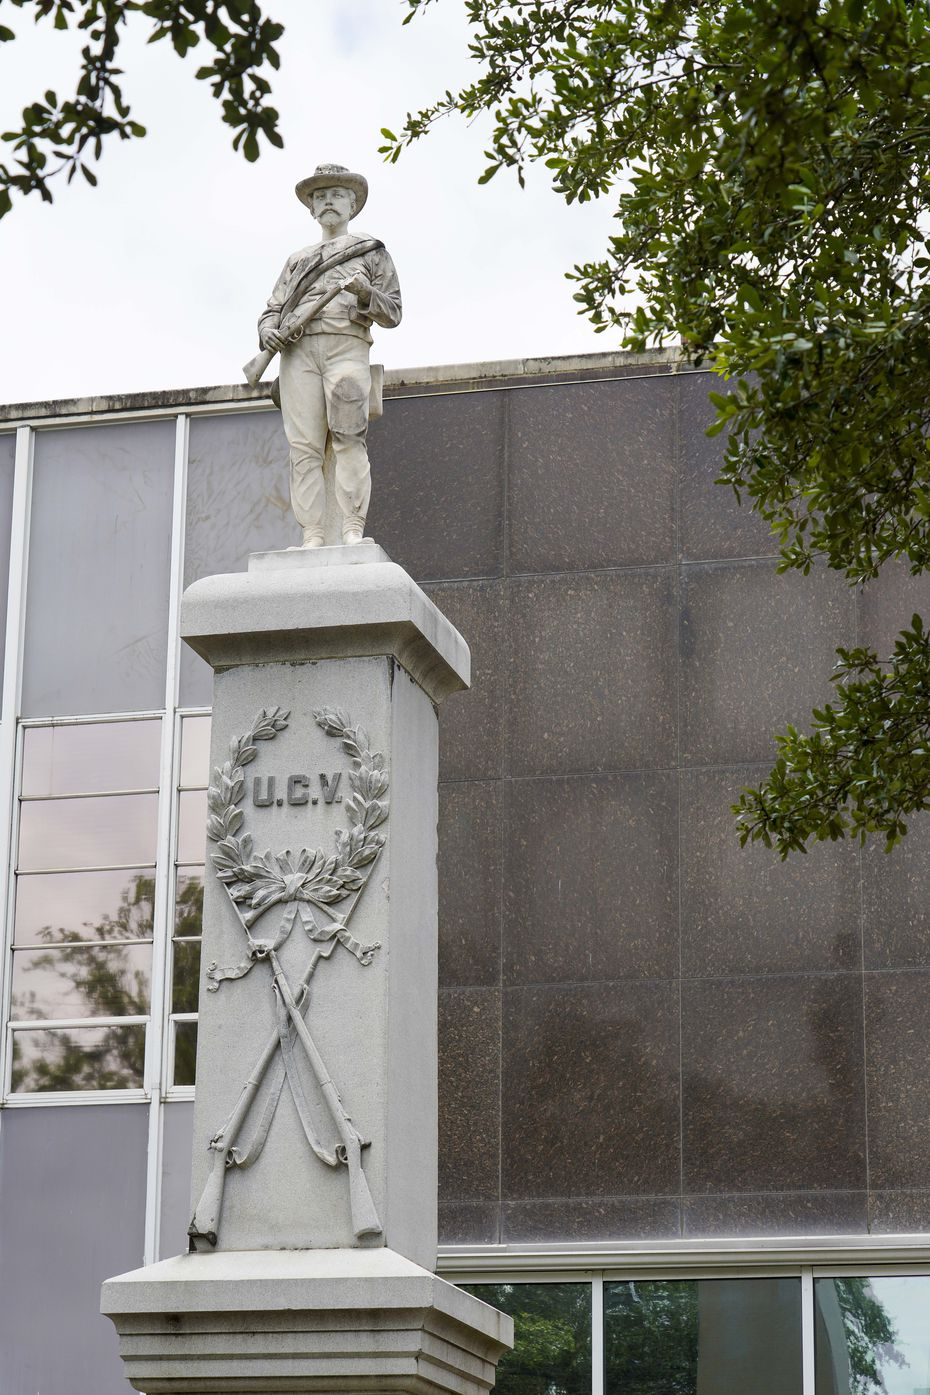 The confederate monument in front of the Kaufman County Courthouse seen on Thursday, June 25, 2020, in Kaufman, Texas.  The monument commemorates Kaufman Country residents who fought for the confederacy in the civil war.